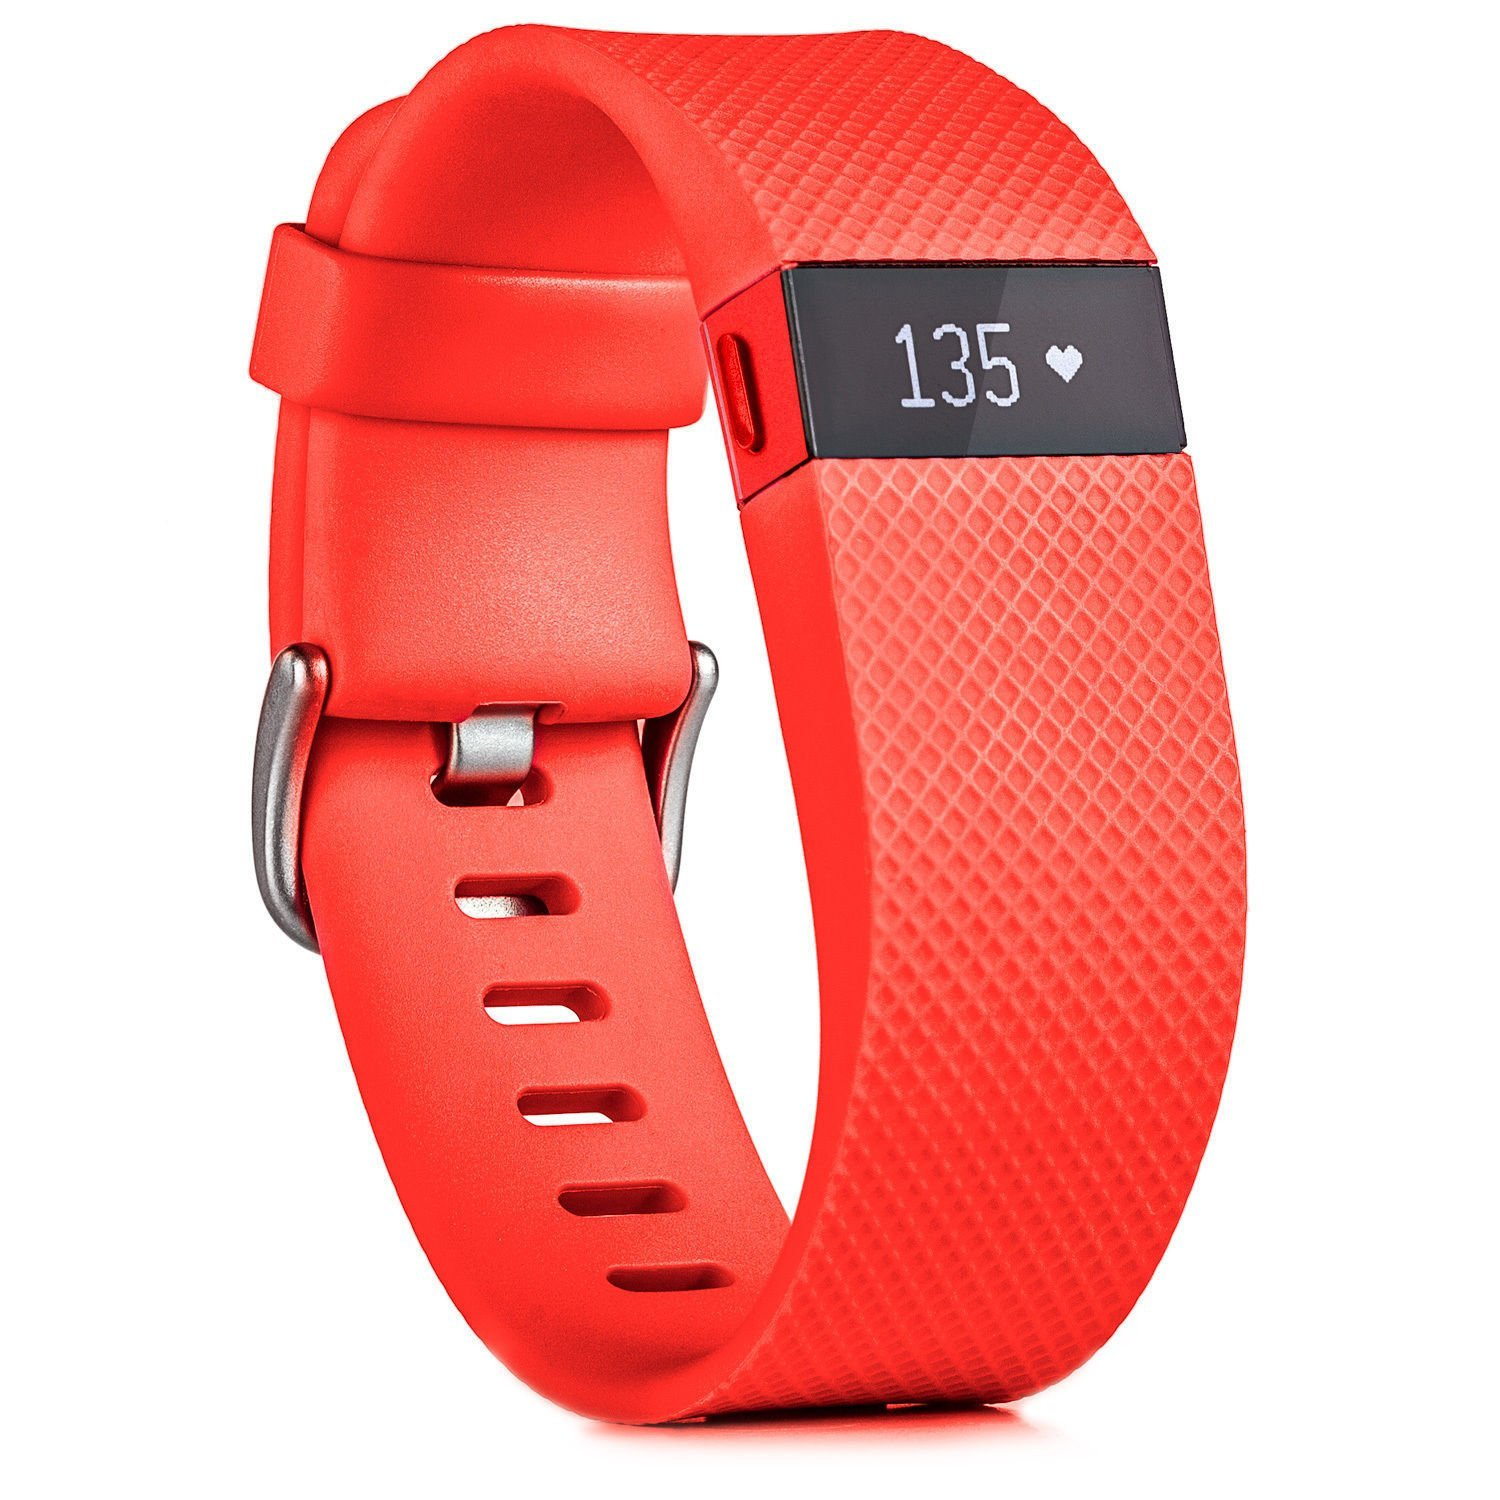 Tangerine Fitbit Charge HR Activity, Heart Rate + Sleep Wristband (Small) (small)